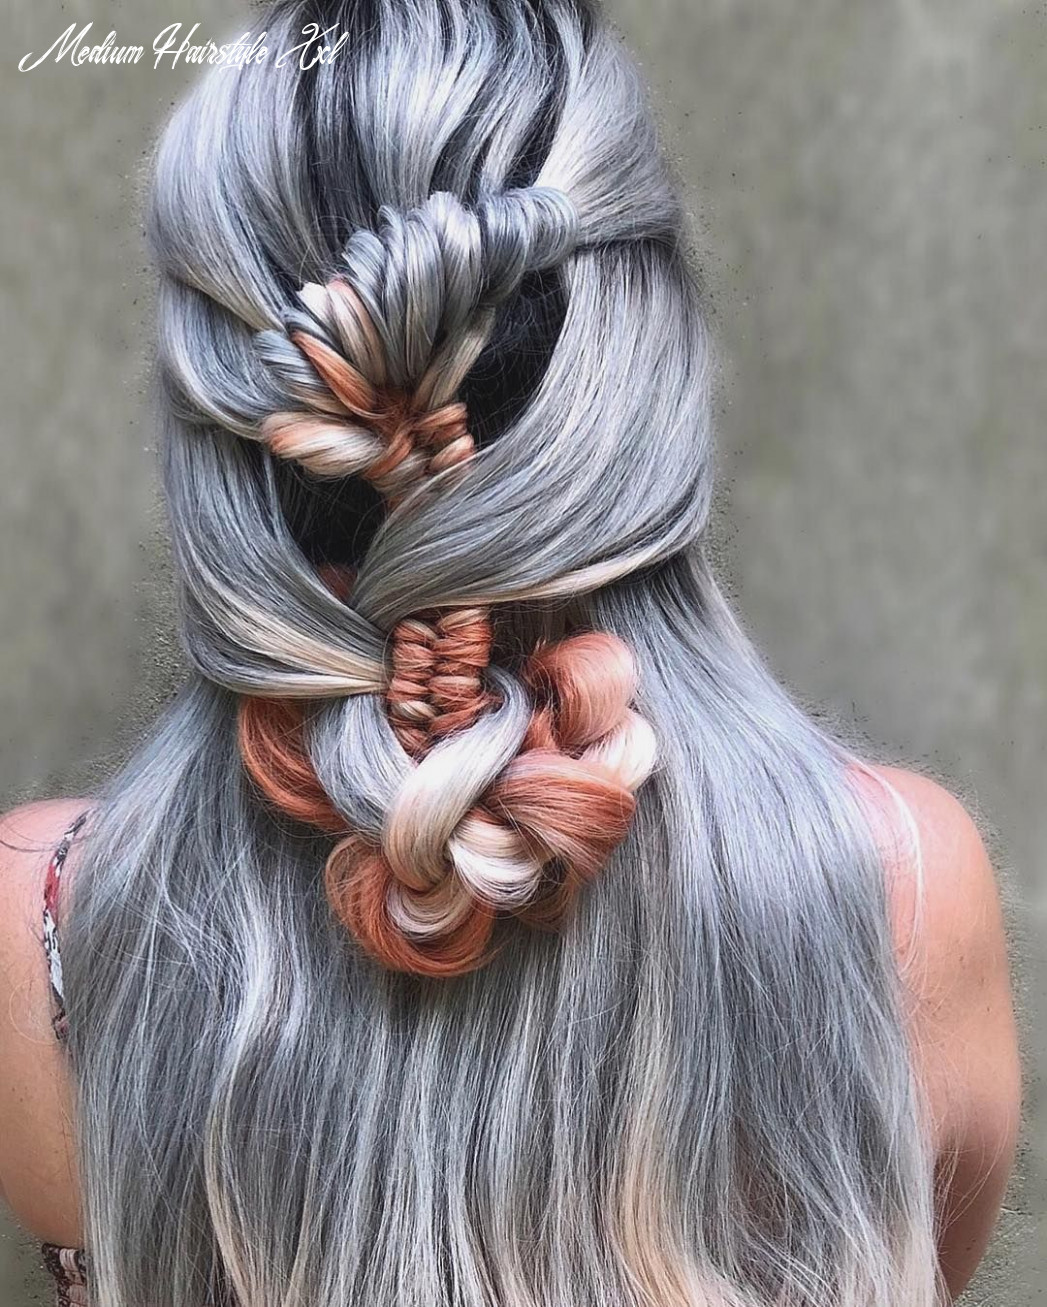 Xxl waves hair style page 11 of 11 | braids for medium length